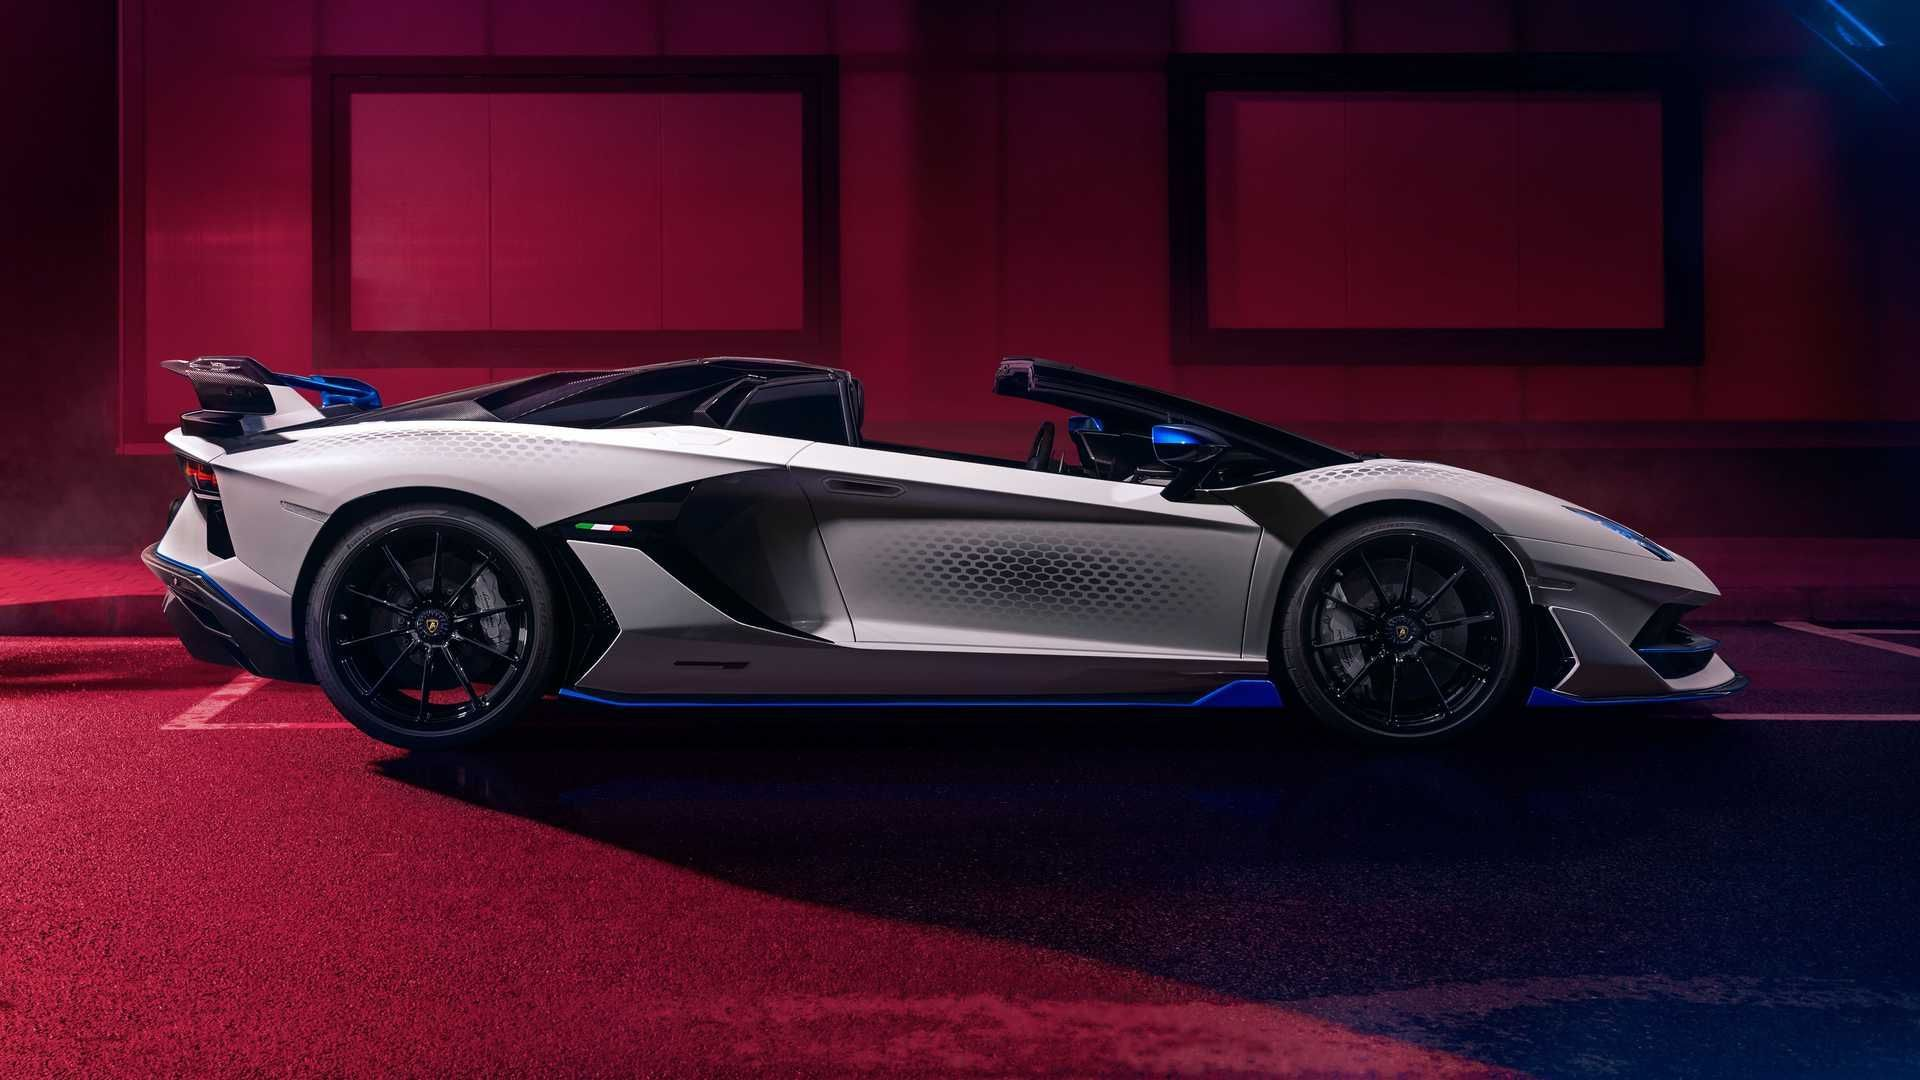 The Aventador SVJ Xago that only 10 people can